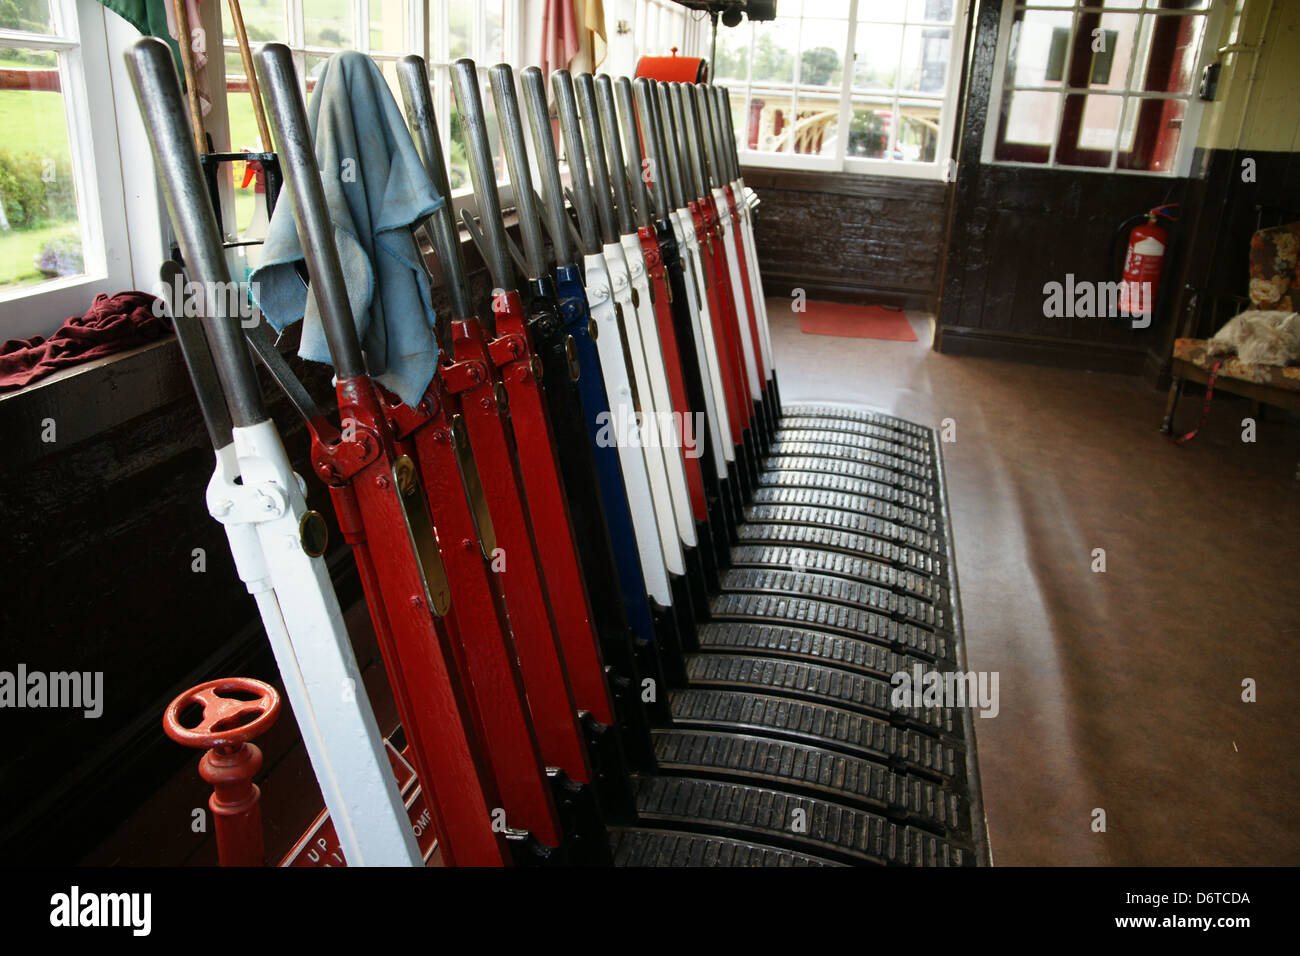 Railway signal box with actuating levers for controlling signals and points at the Bala Lake Railway in Llanuwchllyn - Stock Image